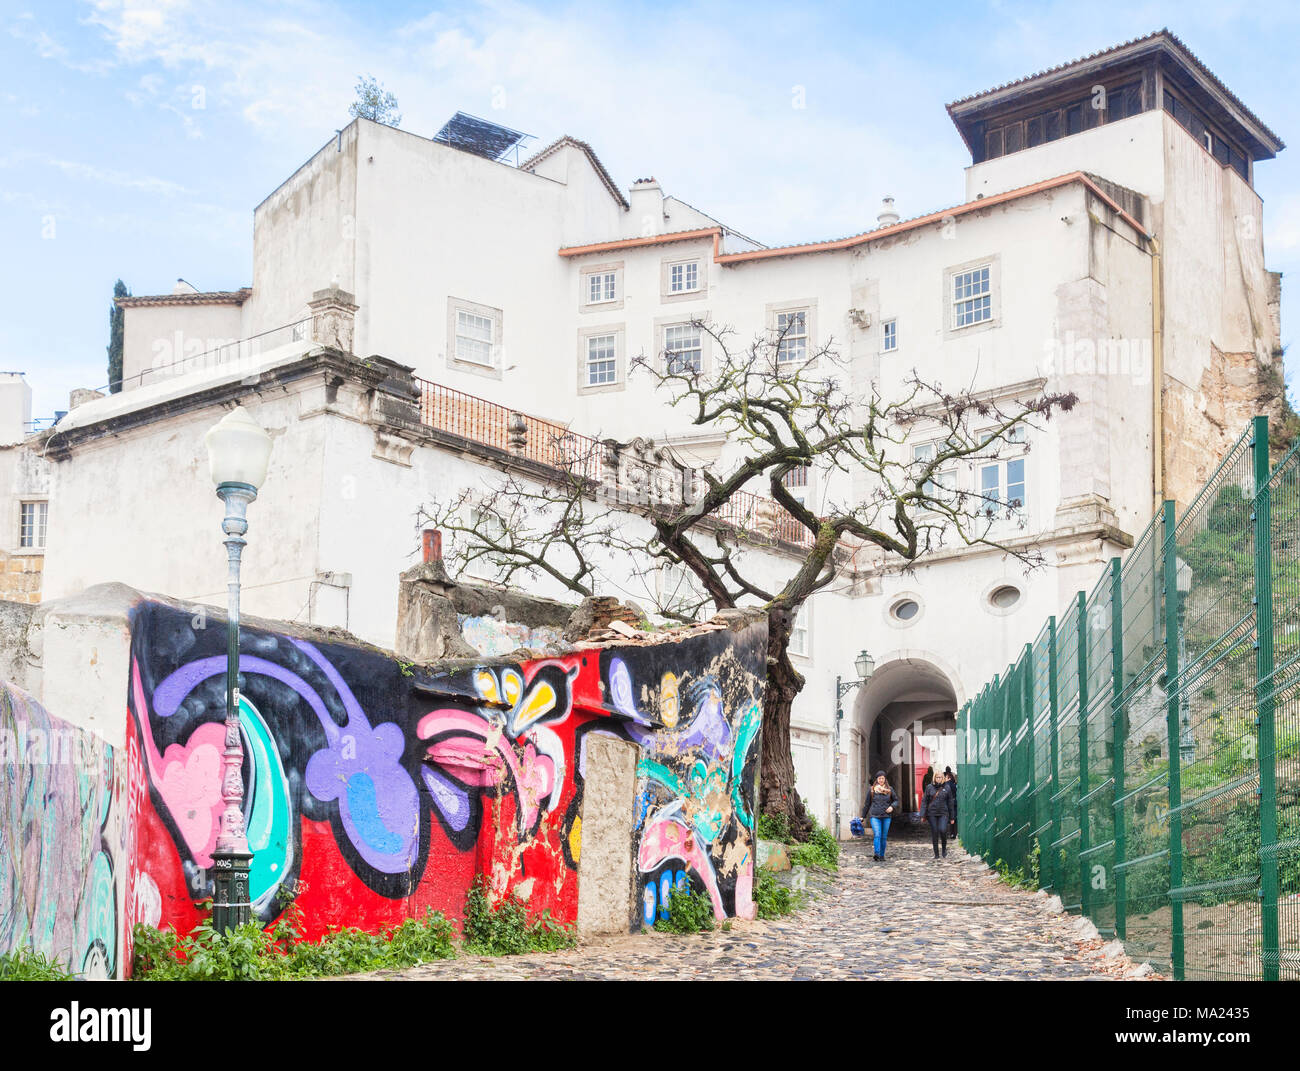 1 March 2018: Lisbon, Portugal - Graffiti or Mural near the entrance to the Castle of St George. - Stock Image